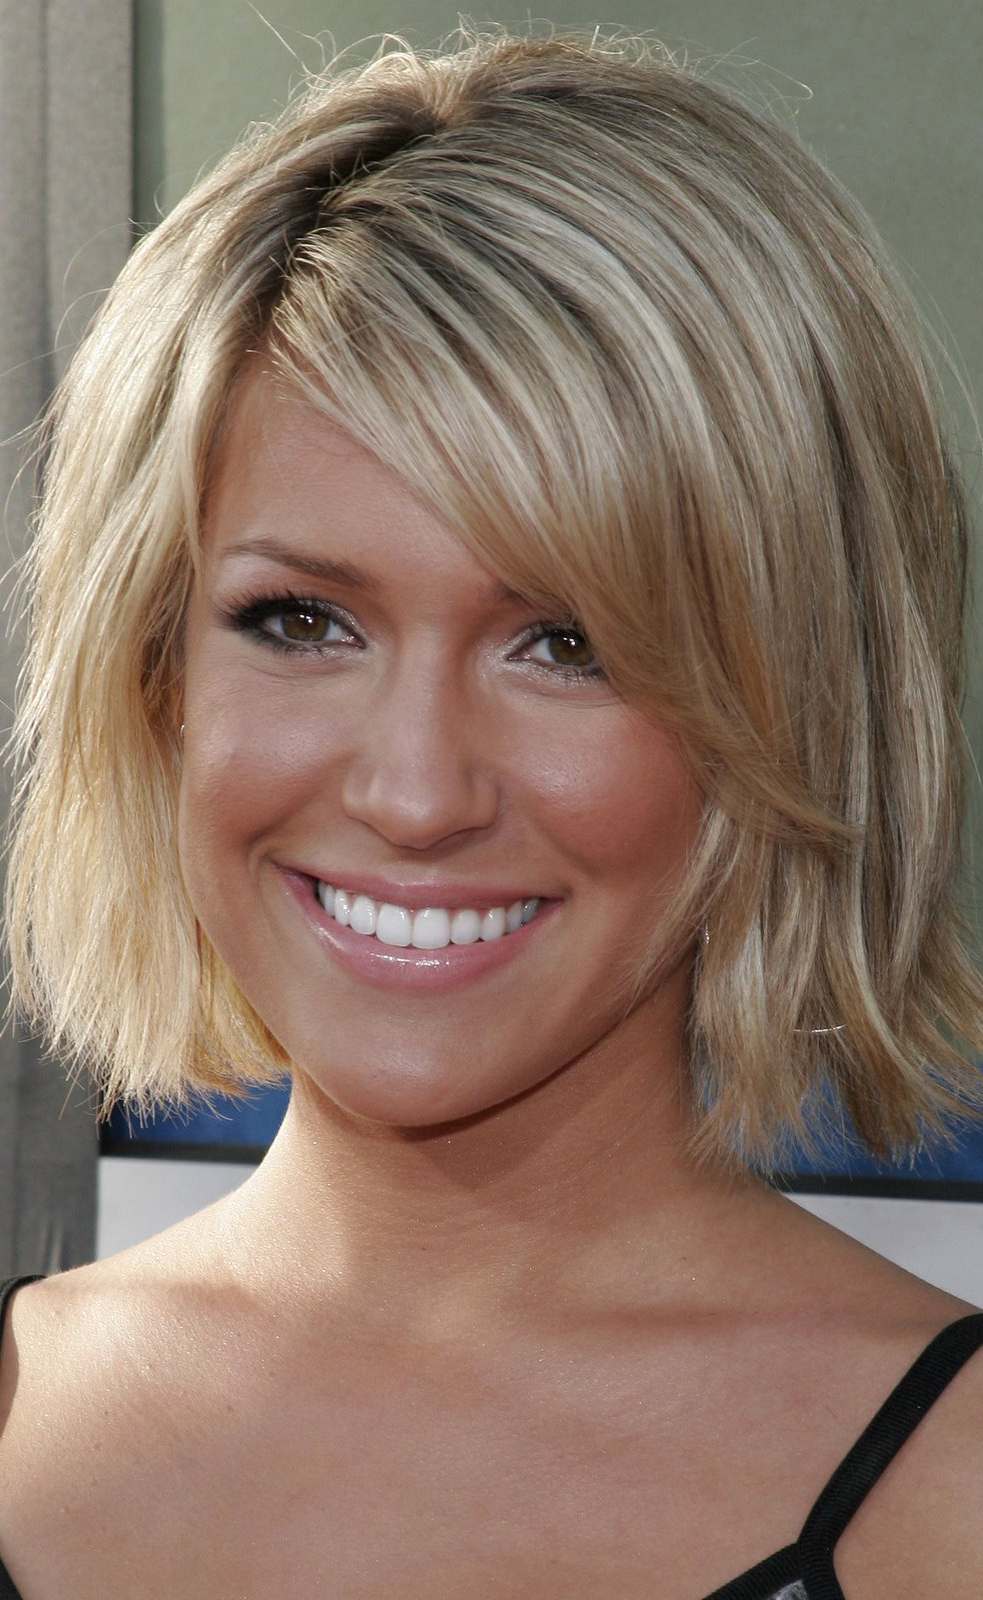 Short Hairstyles Glasses Wearers   Hairtechkearney Throughout Short Haircuts For Glasses Wearer (View 24 of 25)